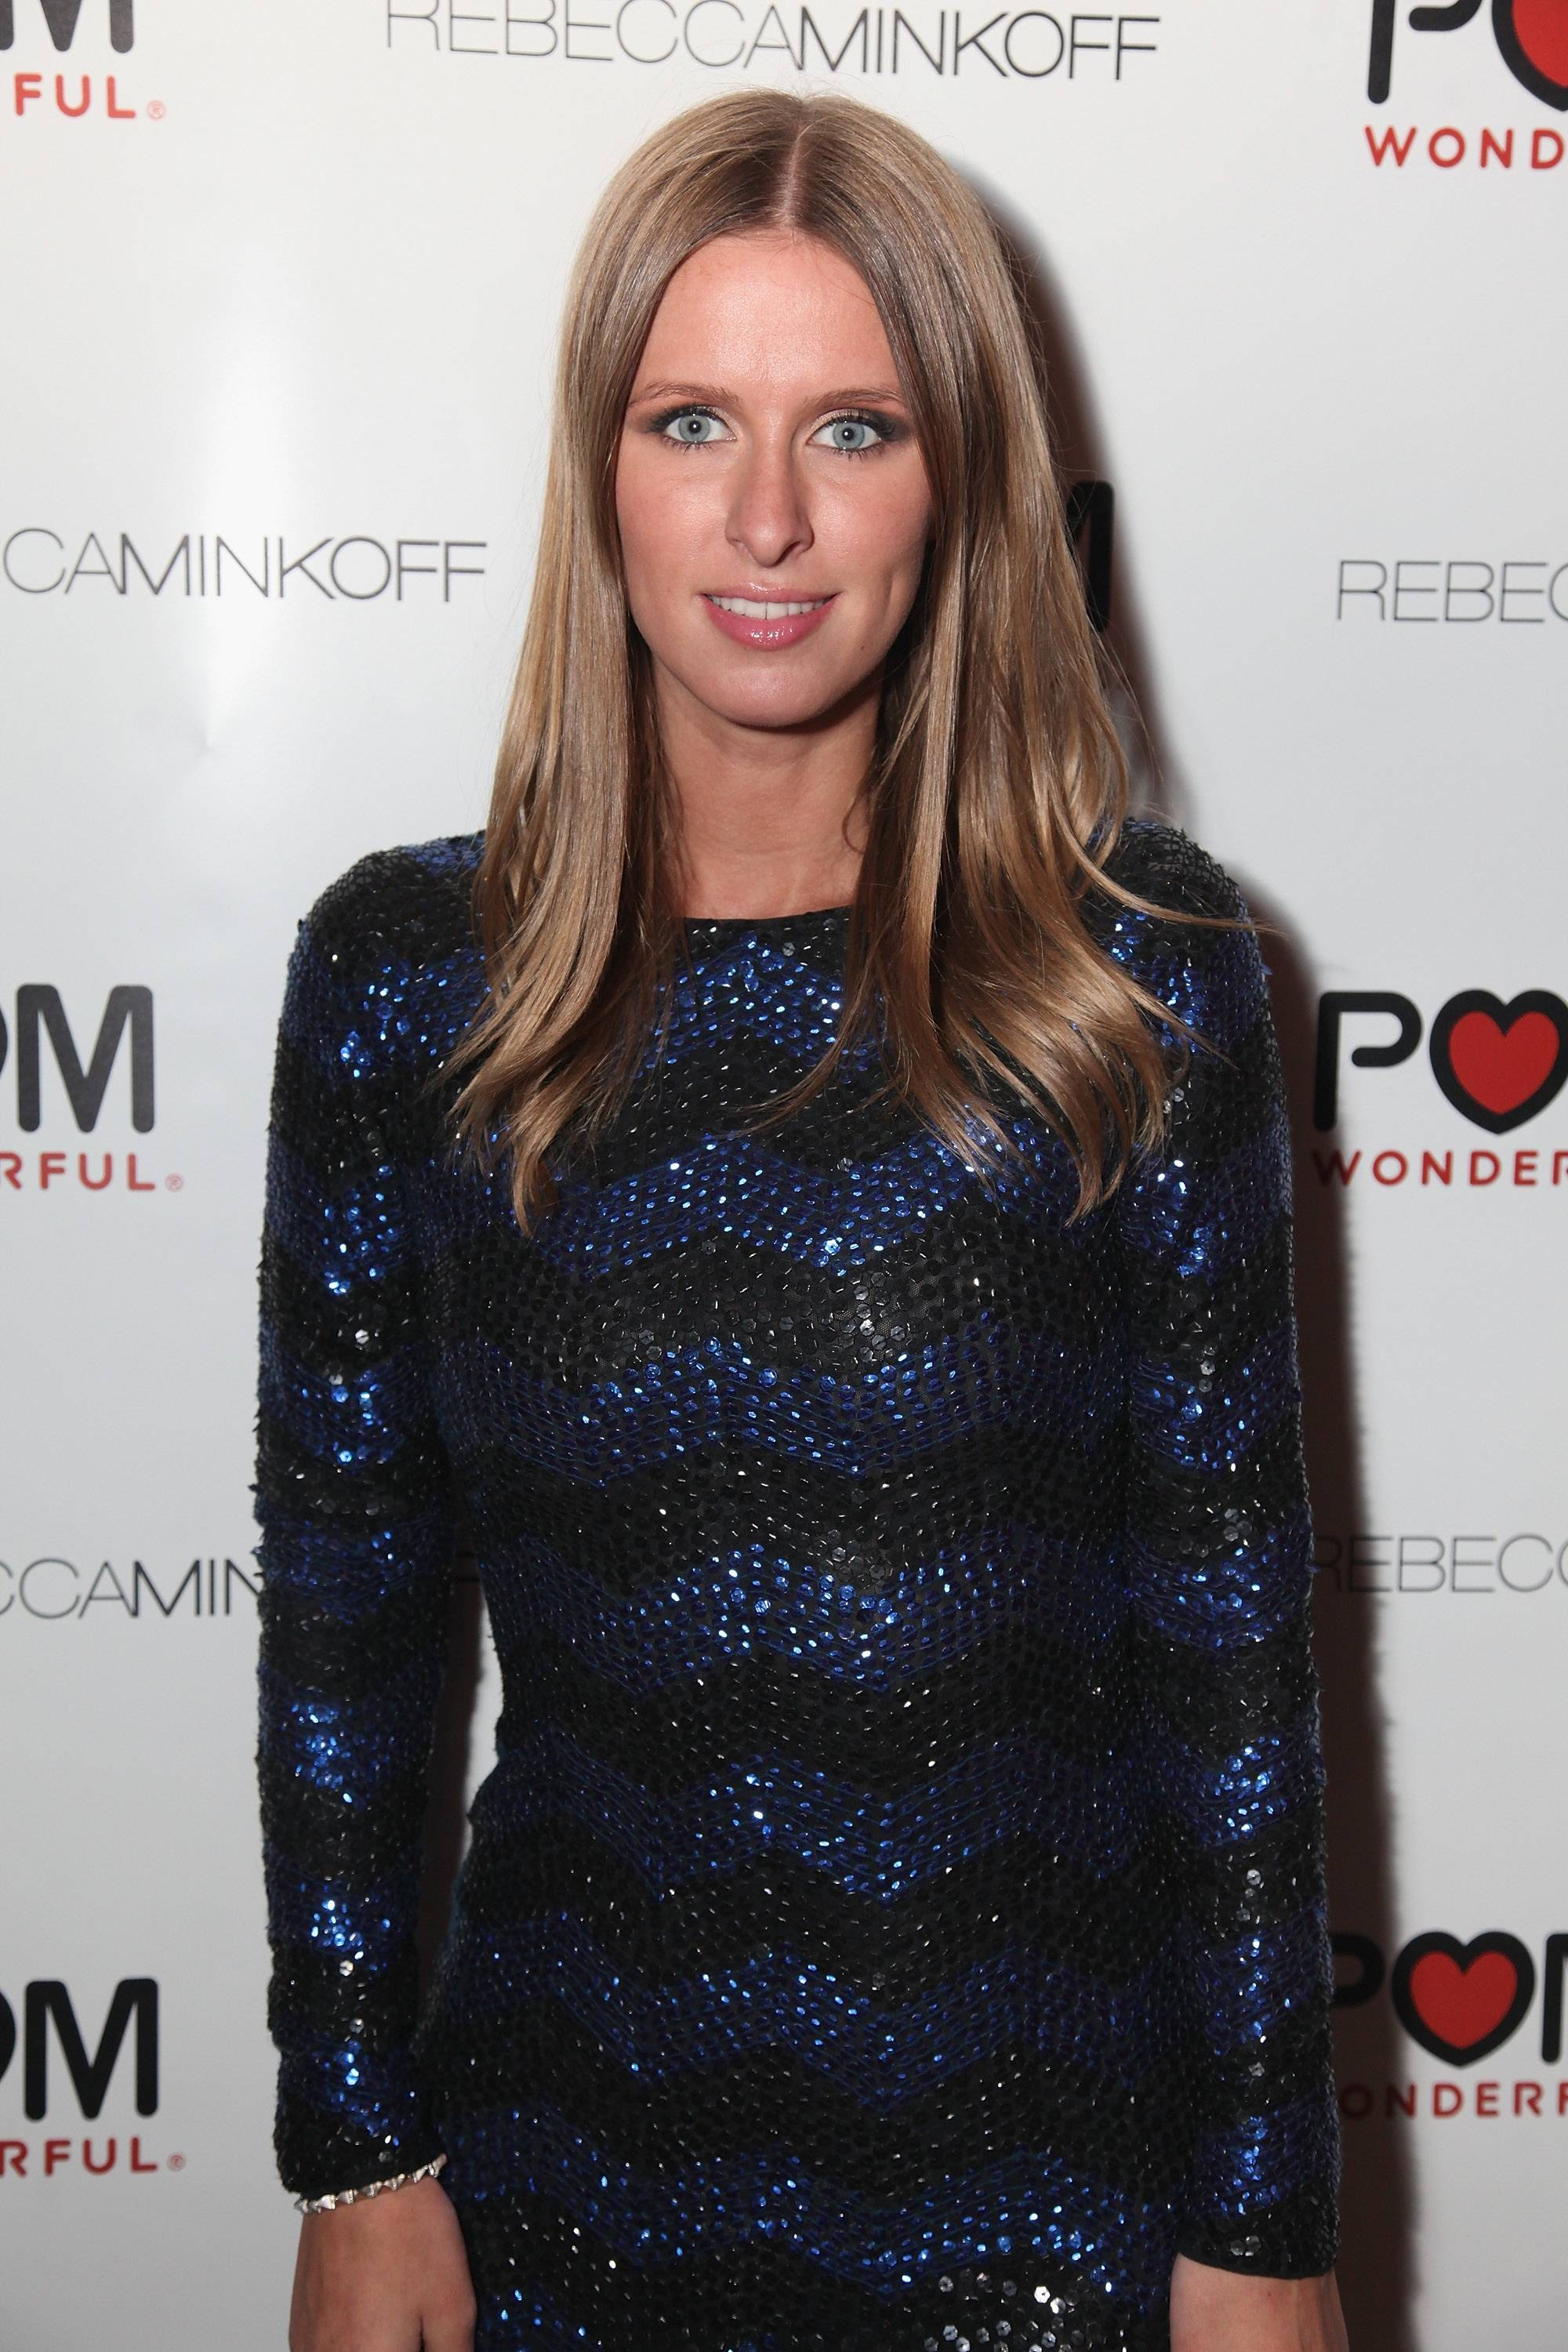 pomNikki Hilton at the Rebecca Minkoff After Party Hosted by POM Wonderful at the Rose Bar, Gramercy Park Hotel